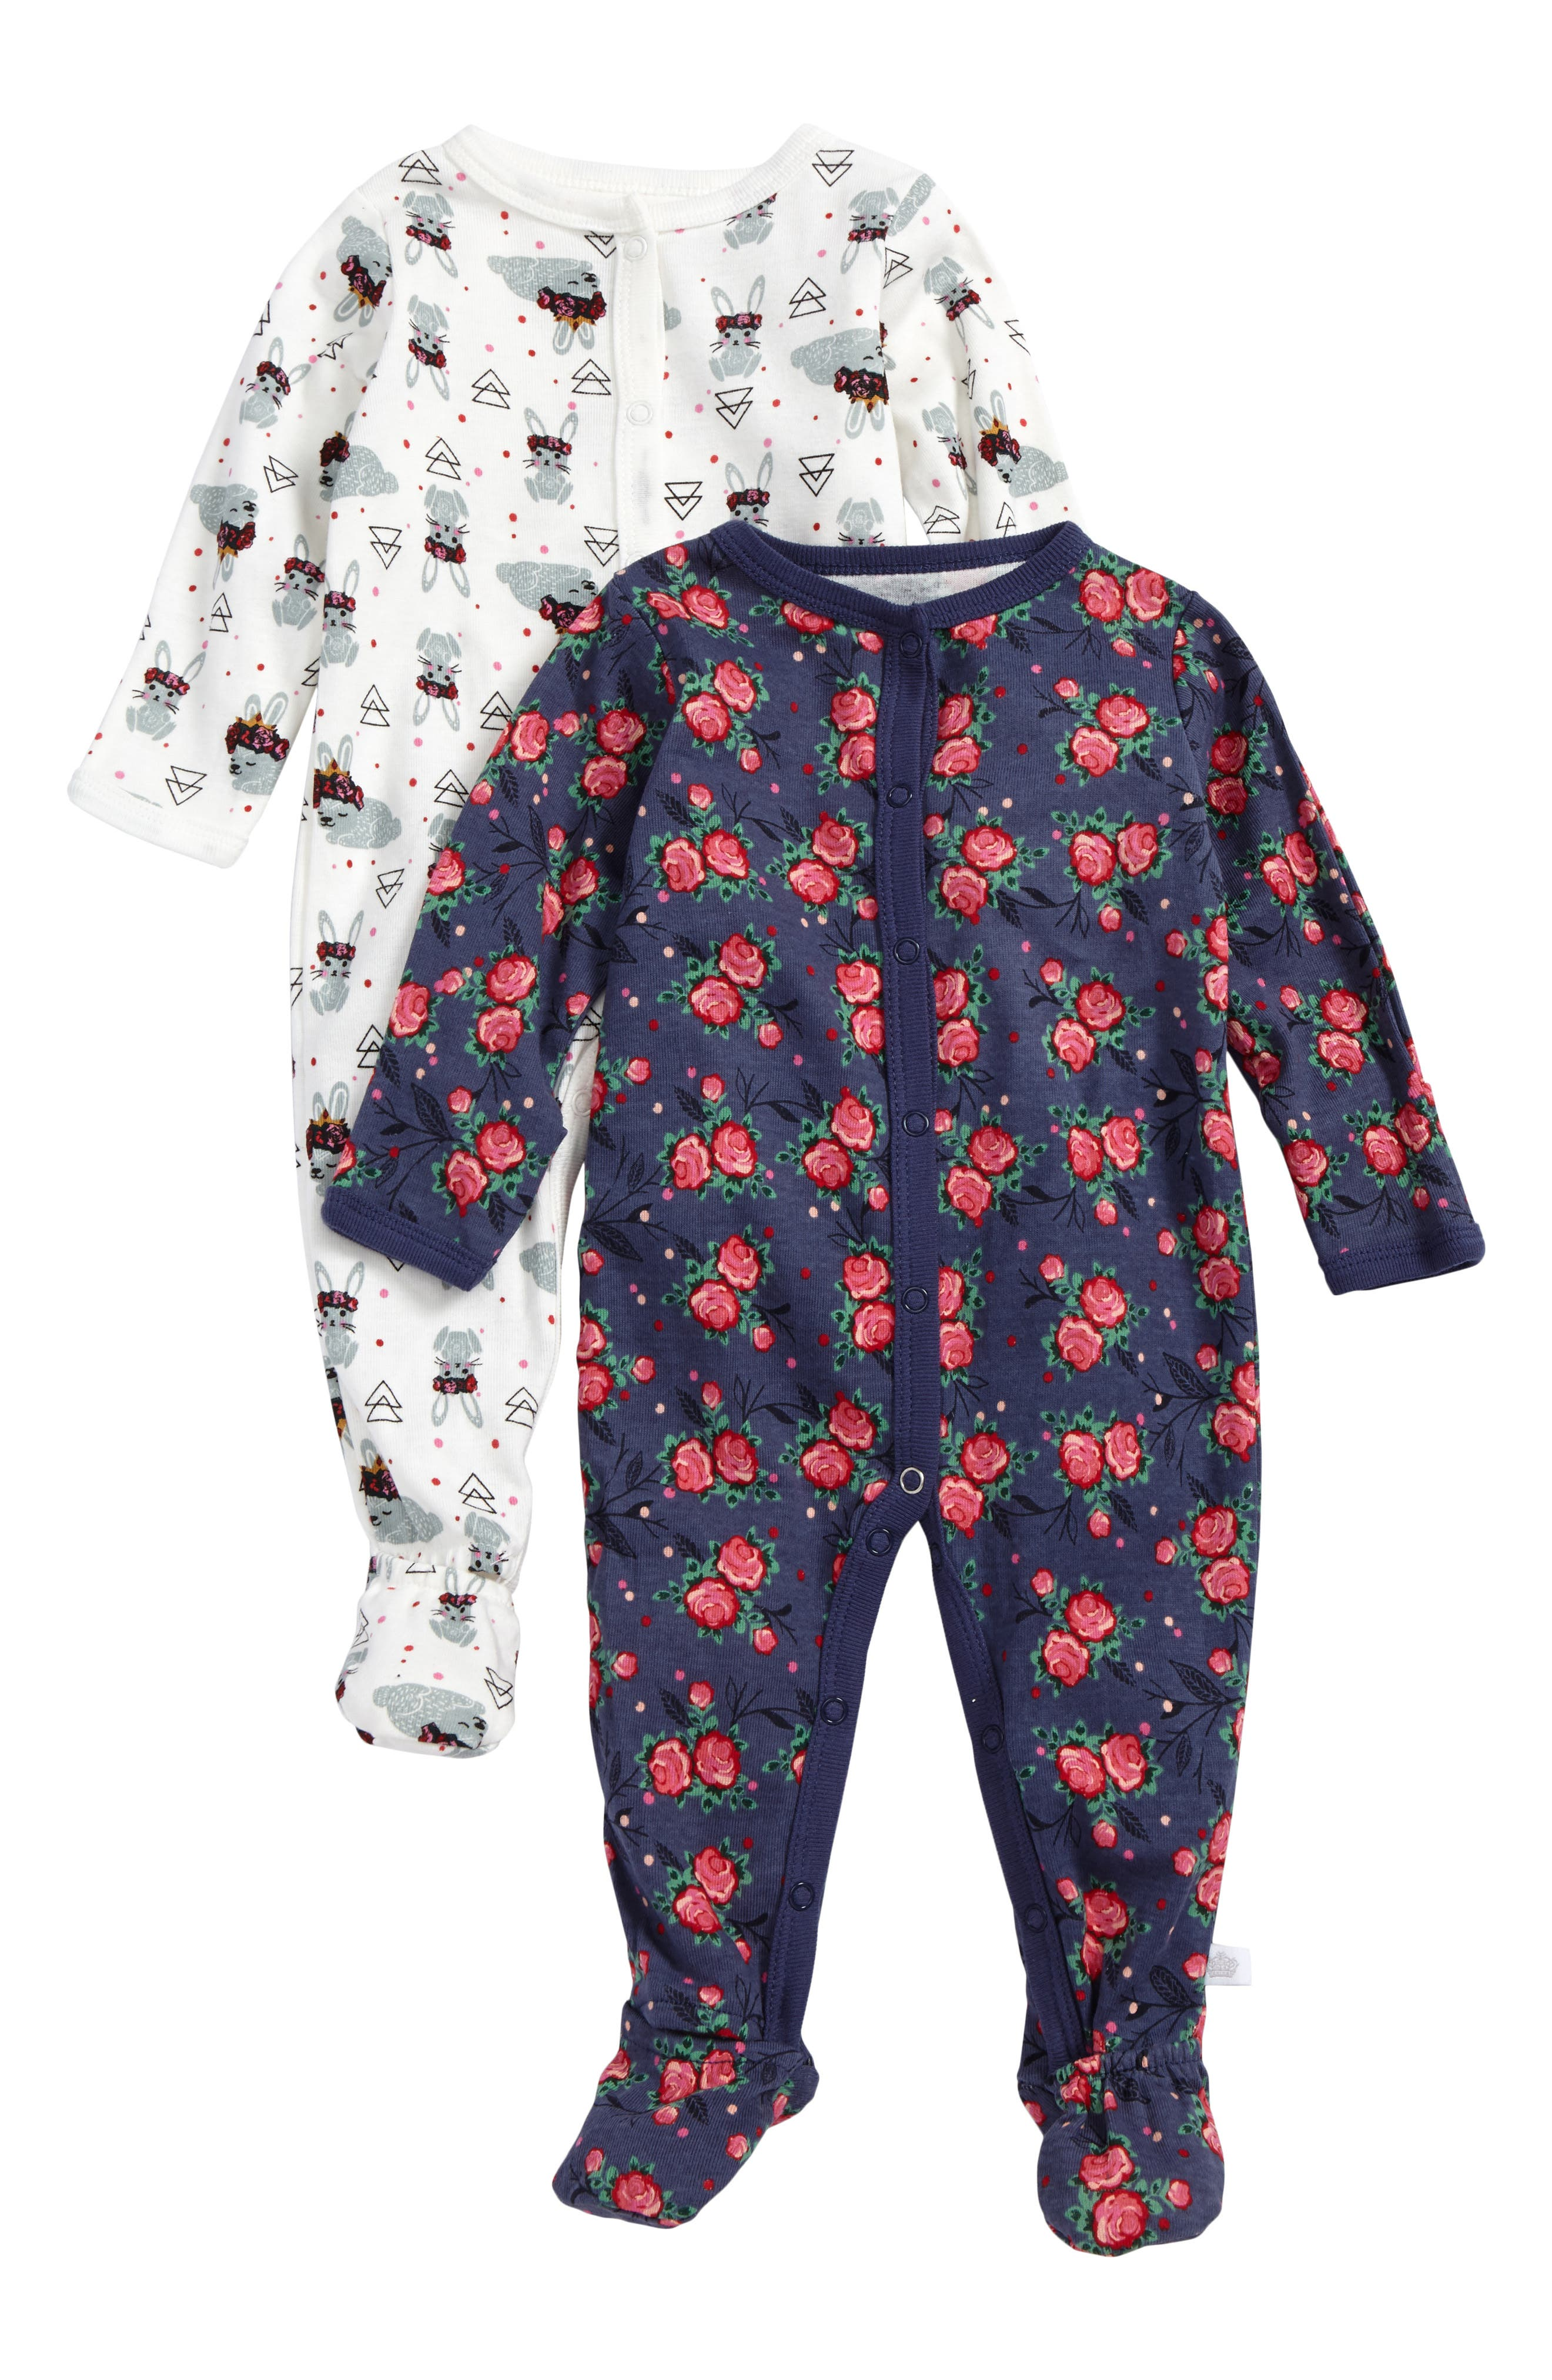 Rosie Pope 2-Pack Footies (Baby Girls)